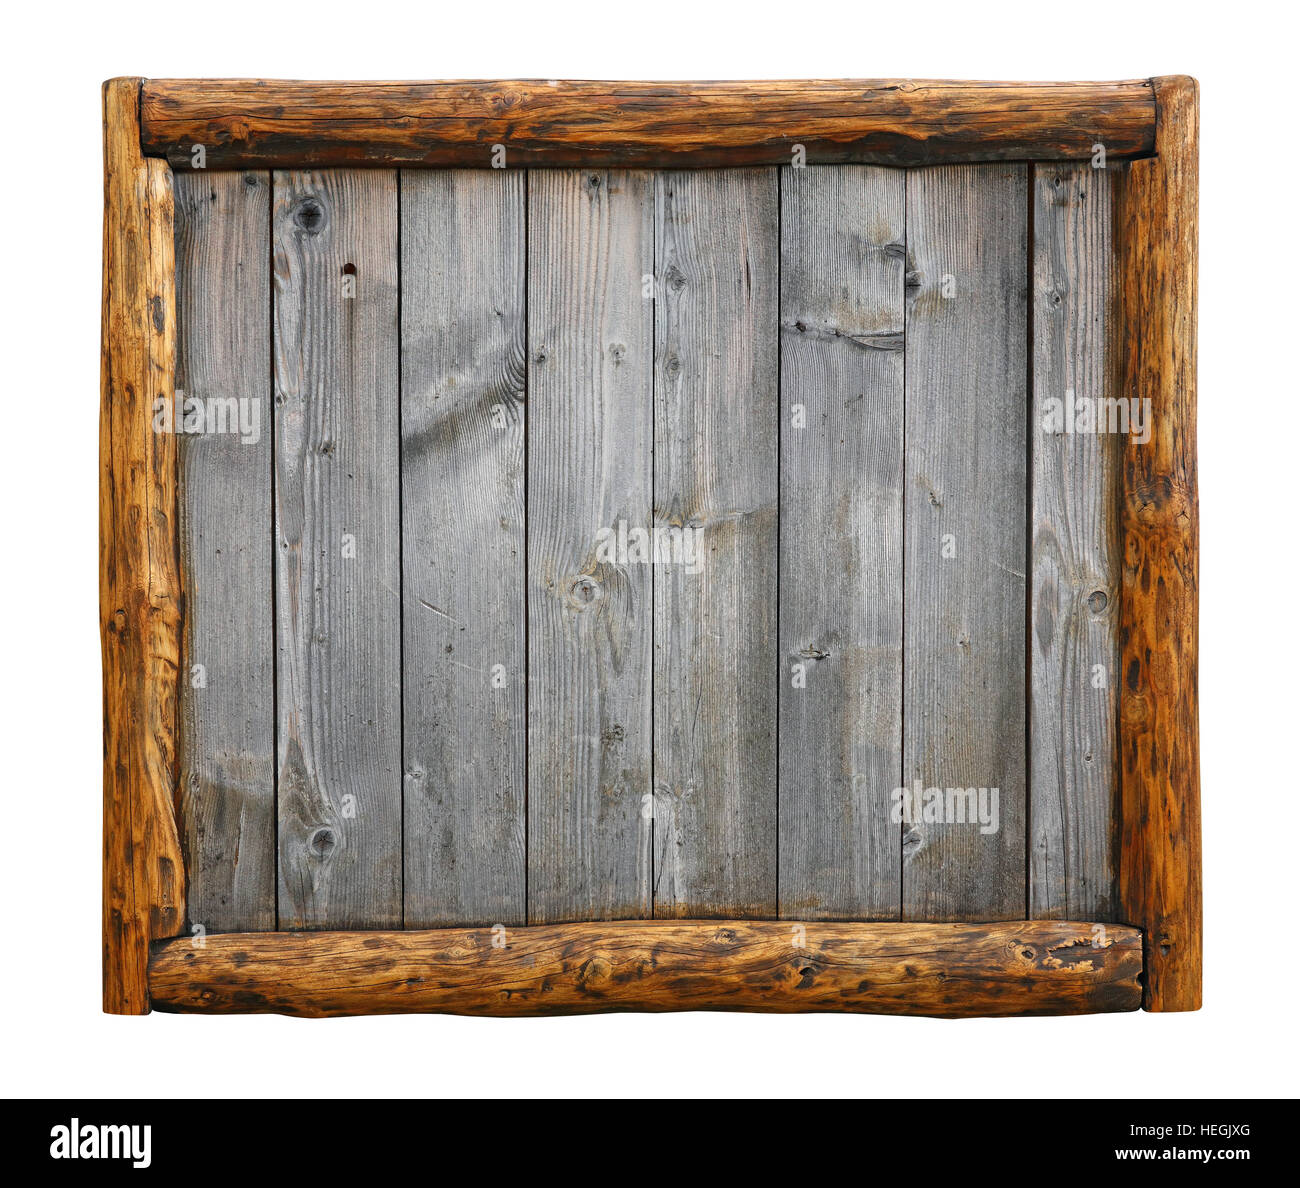 Rustic Wood Boards ~ Old vintage wooden grunge gray aged rustic planks bulletin